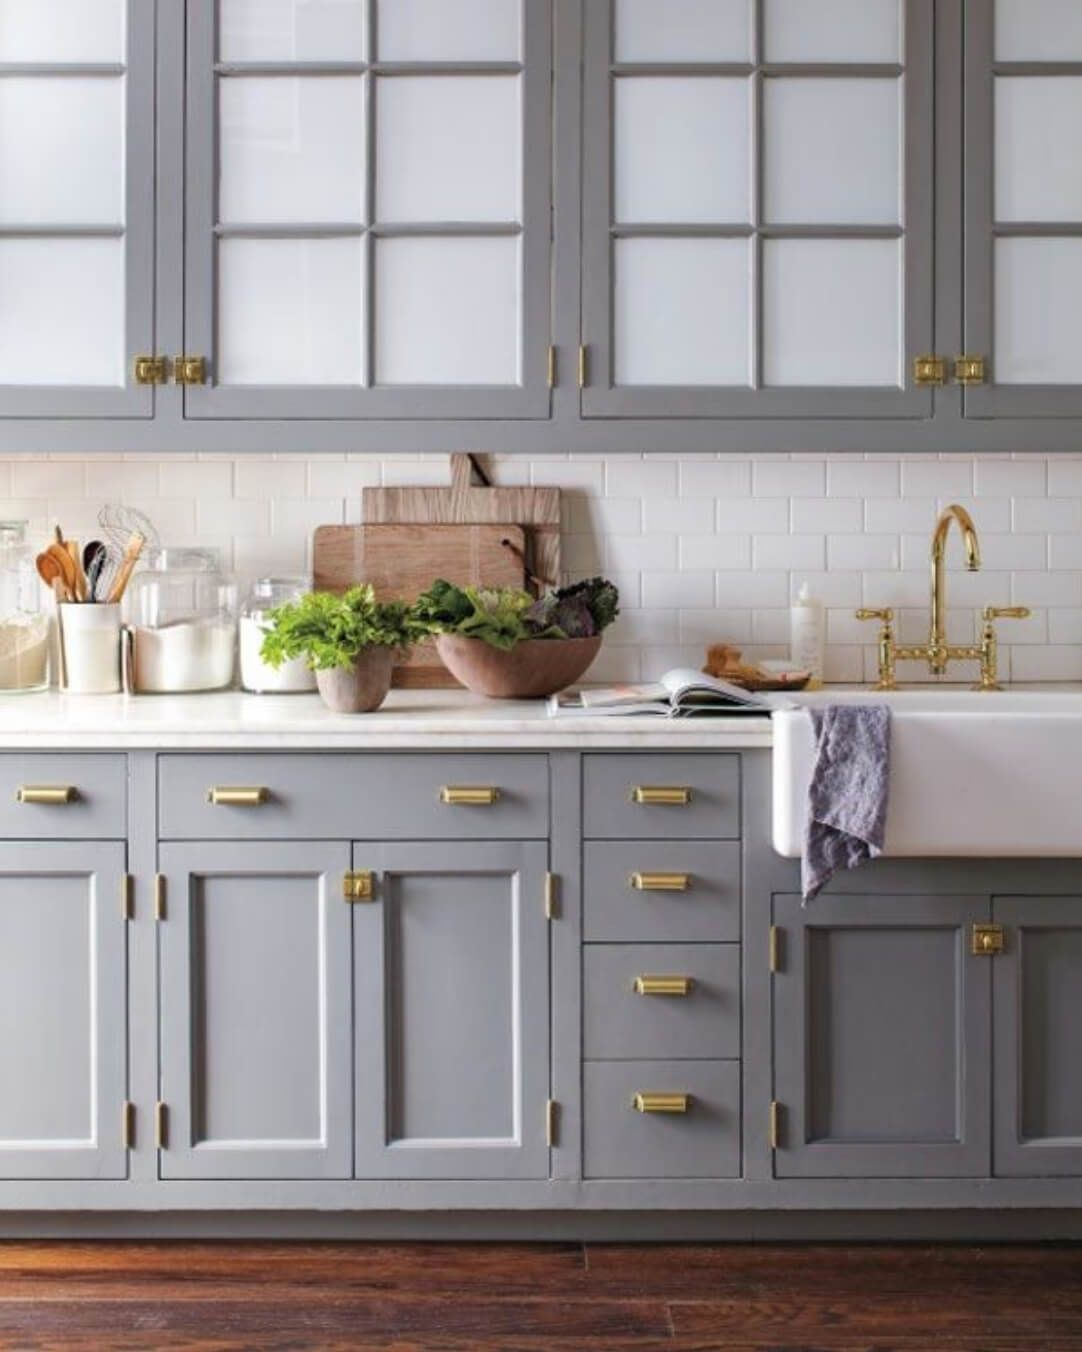 7 Unexpected Ways To Update Your Kitchen Color Palette Https Freshome Com Update Ki Blue Gray Kitchen Cabinets Kitchen Cabinet Design Grey Kitchen Cabinets